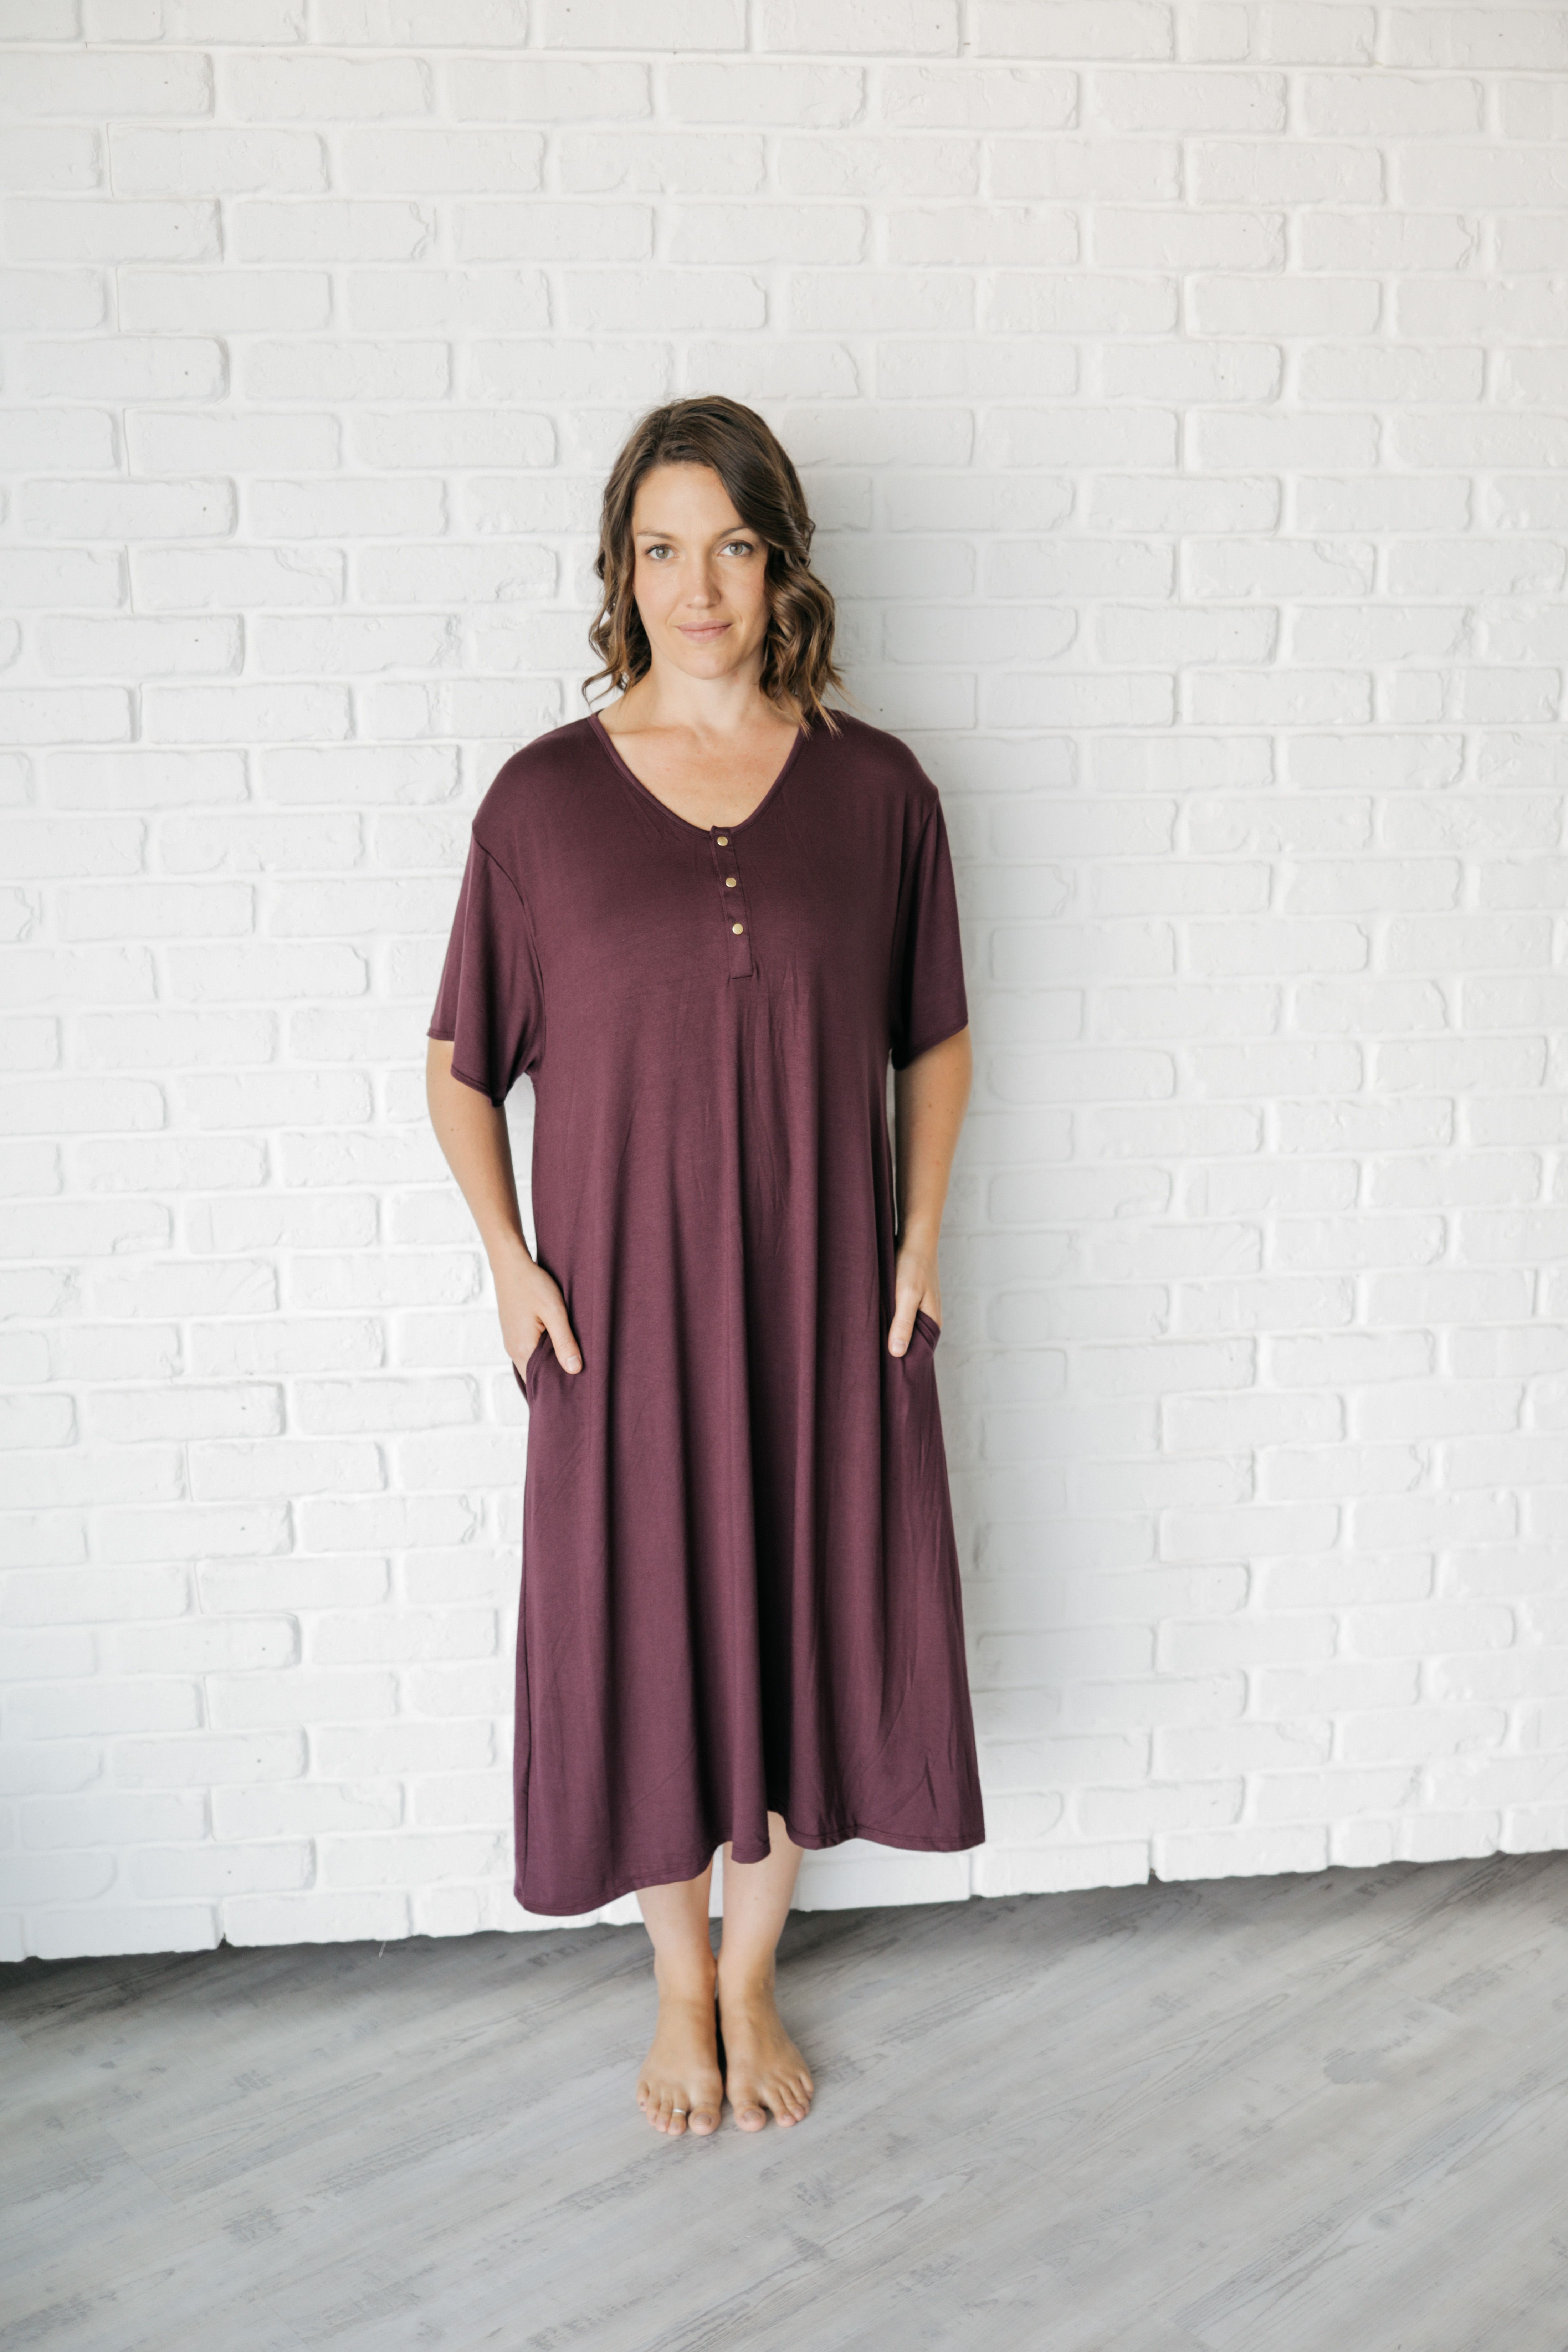 1a96c5e02b14c Undercover Mama Plum Luxe House Dress. The modern house dress for the  modern mom. Perfect for pregnancy, breastfeeding, and beyond!